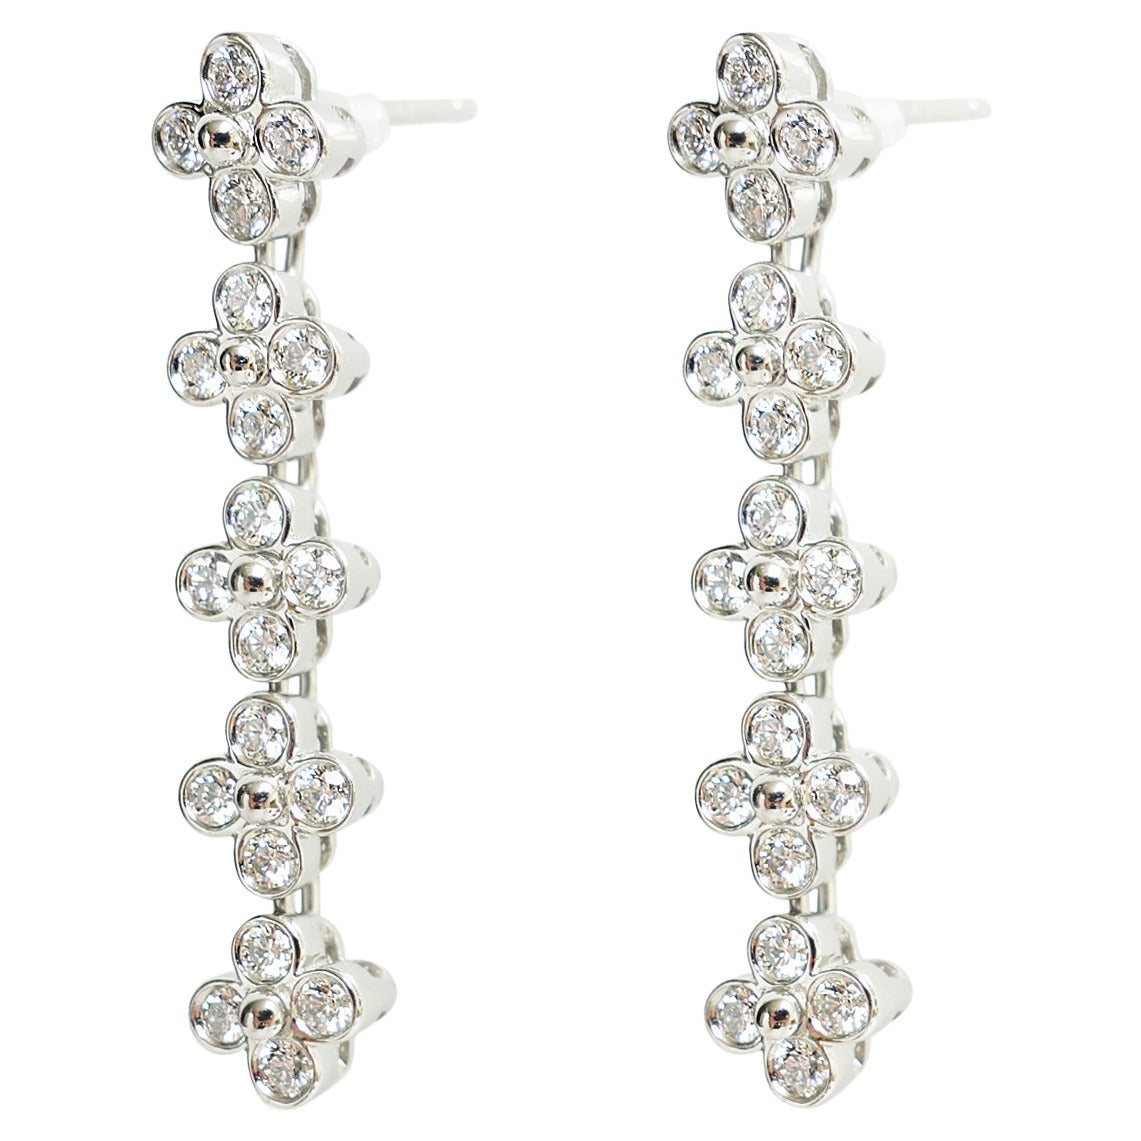 Tiffany & Co Diamond Platinum Lace Floral Dangle Earrings 1